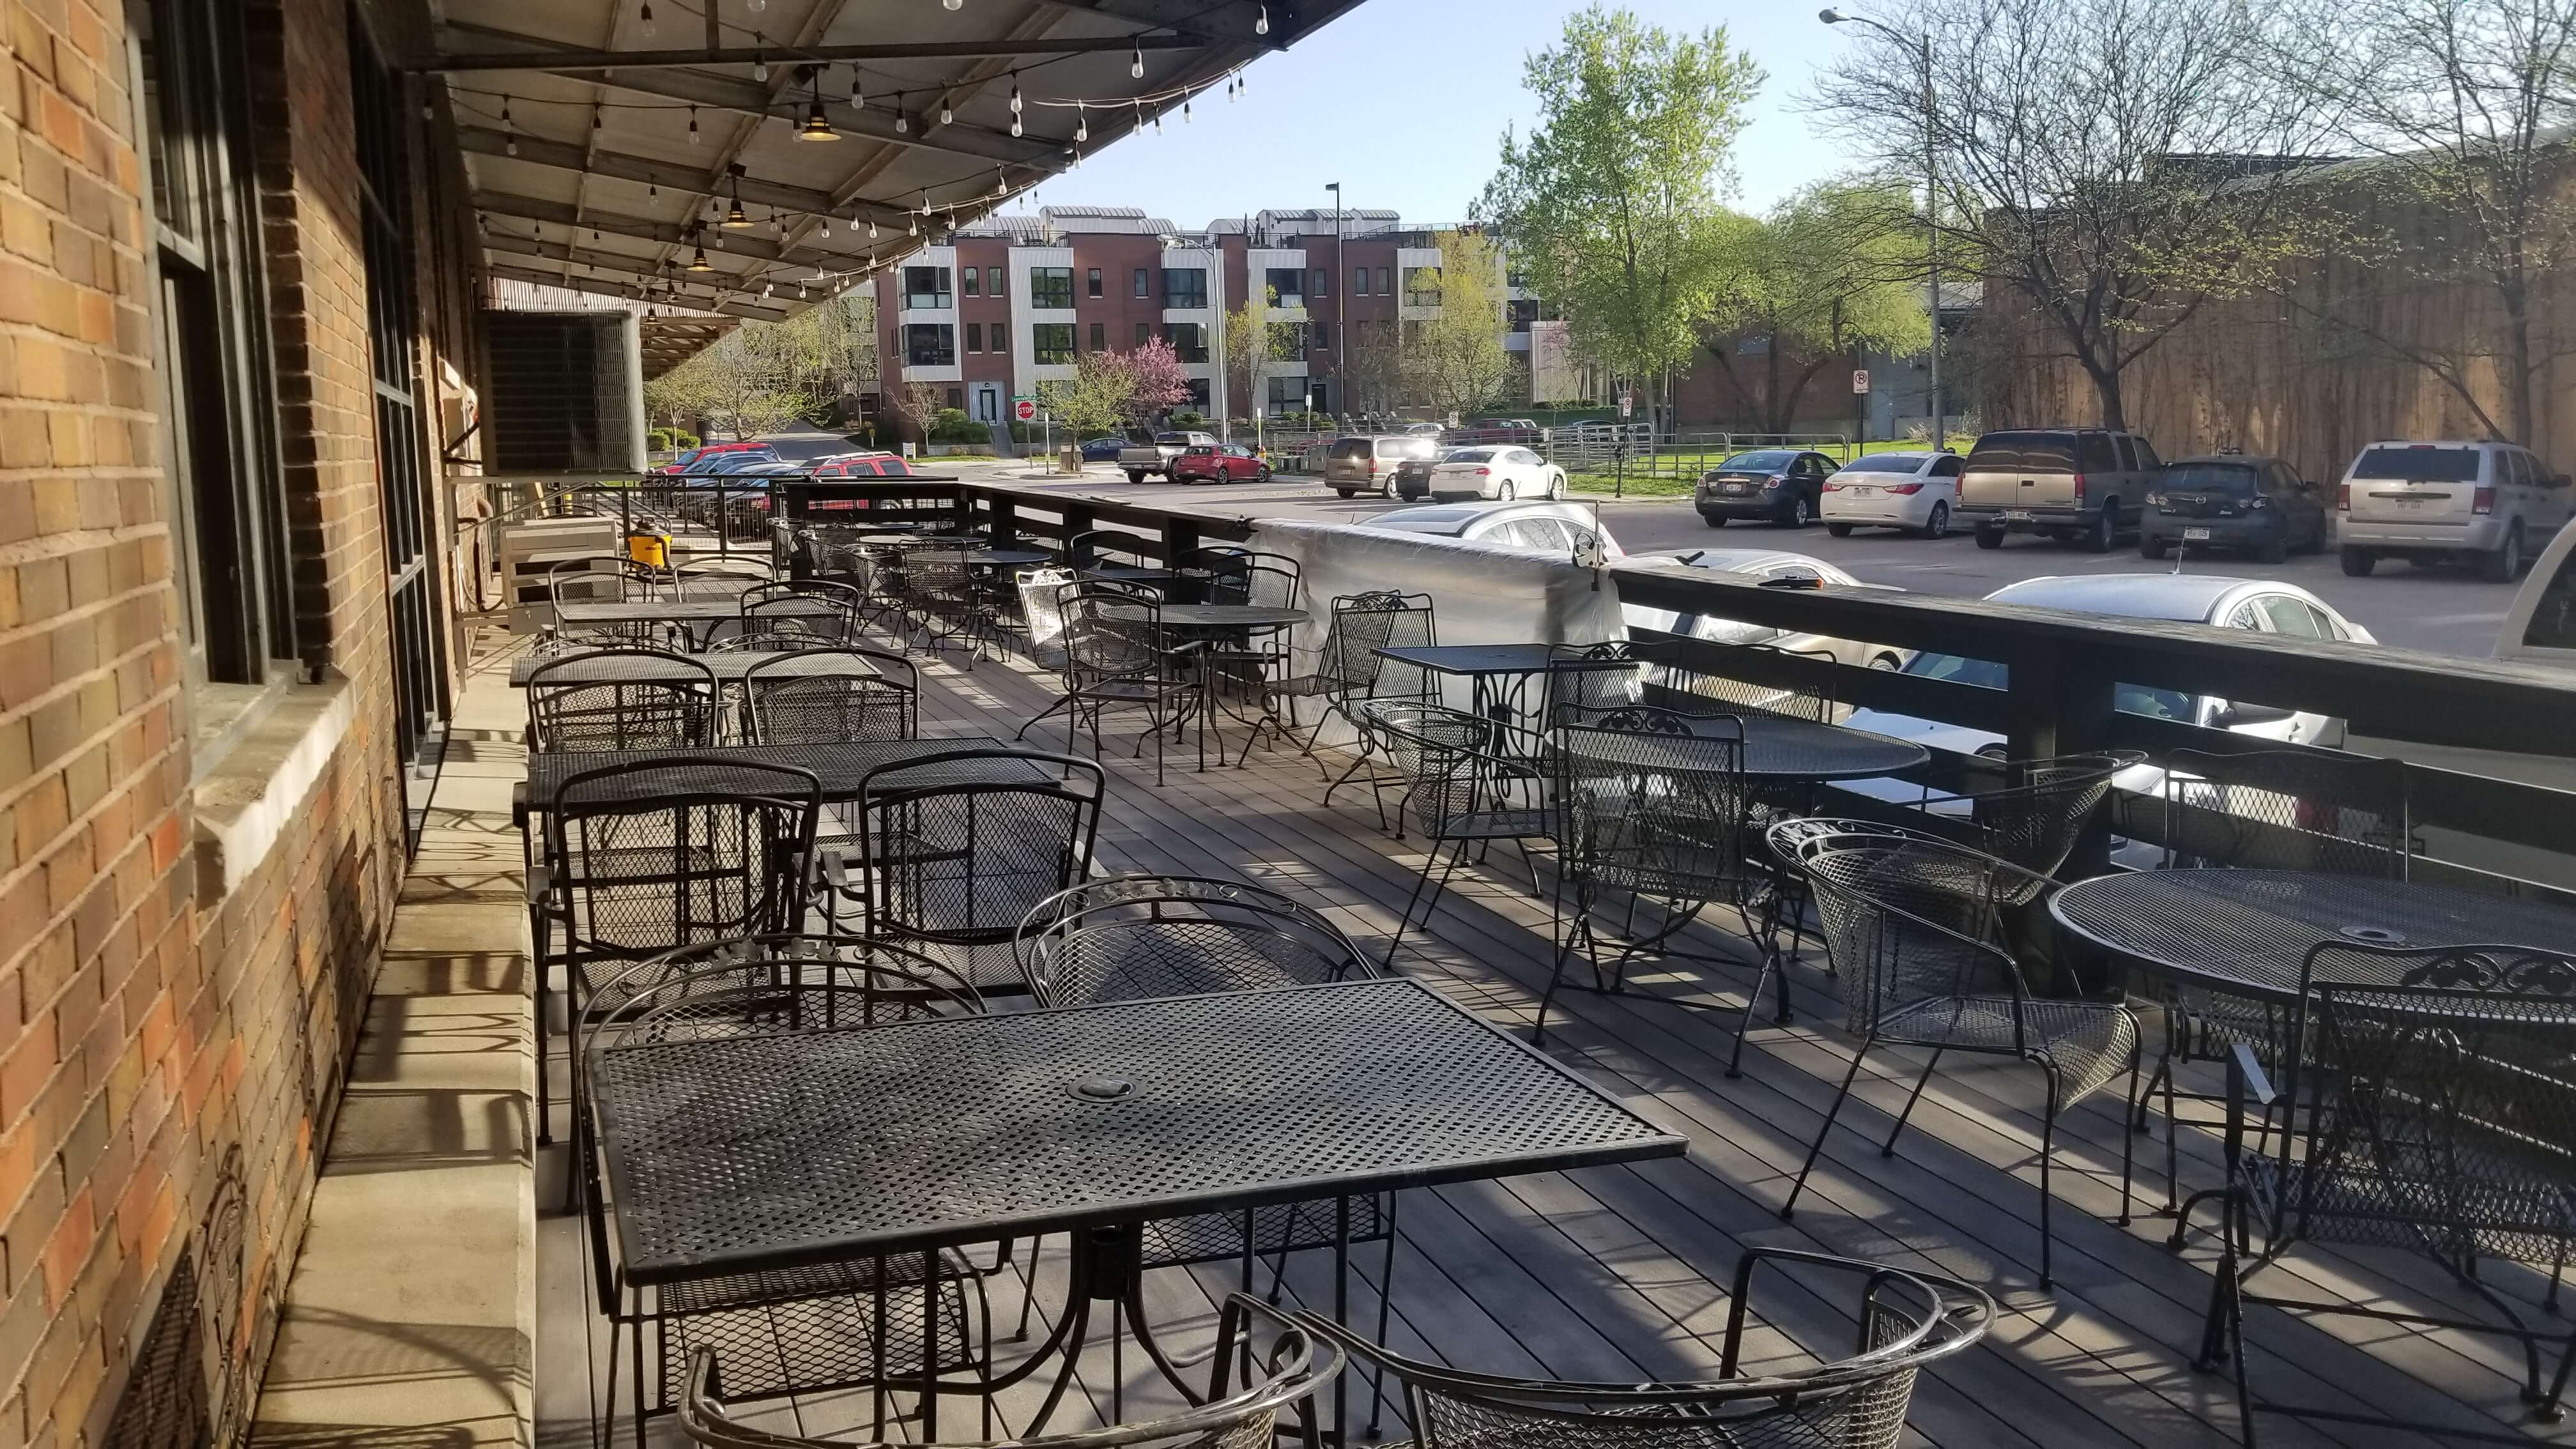 Deck Full of Black Metal Table and Chairs Next to a Downtown Road Lined with Parked Cars